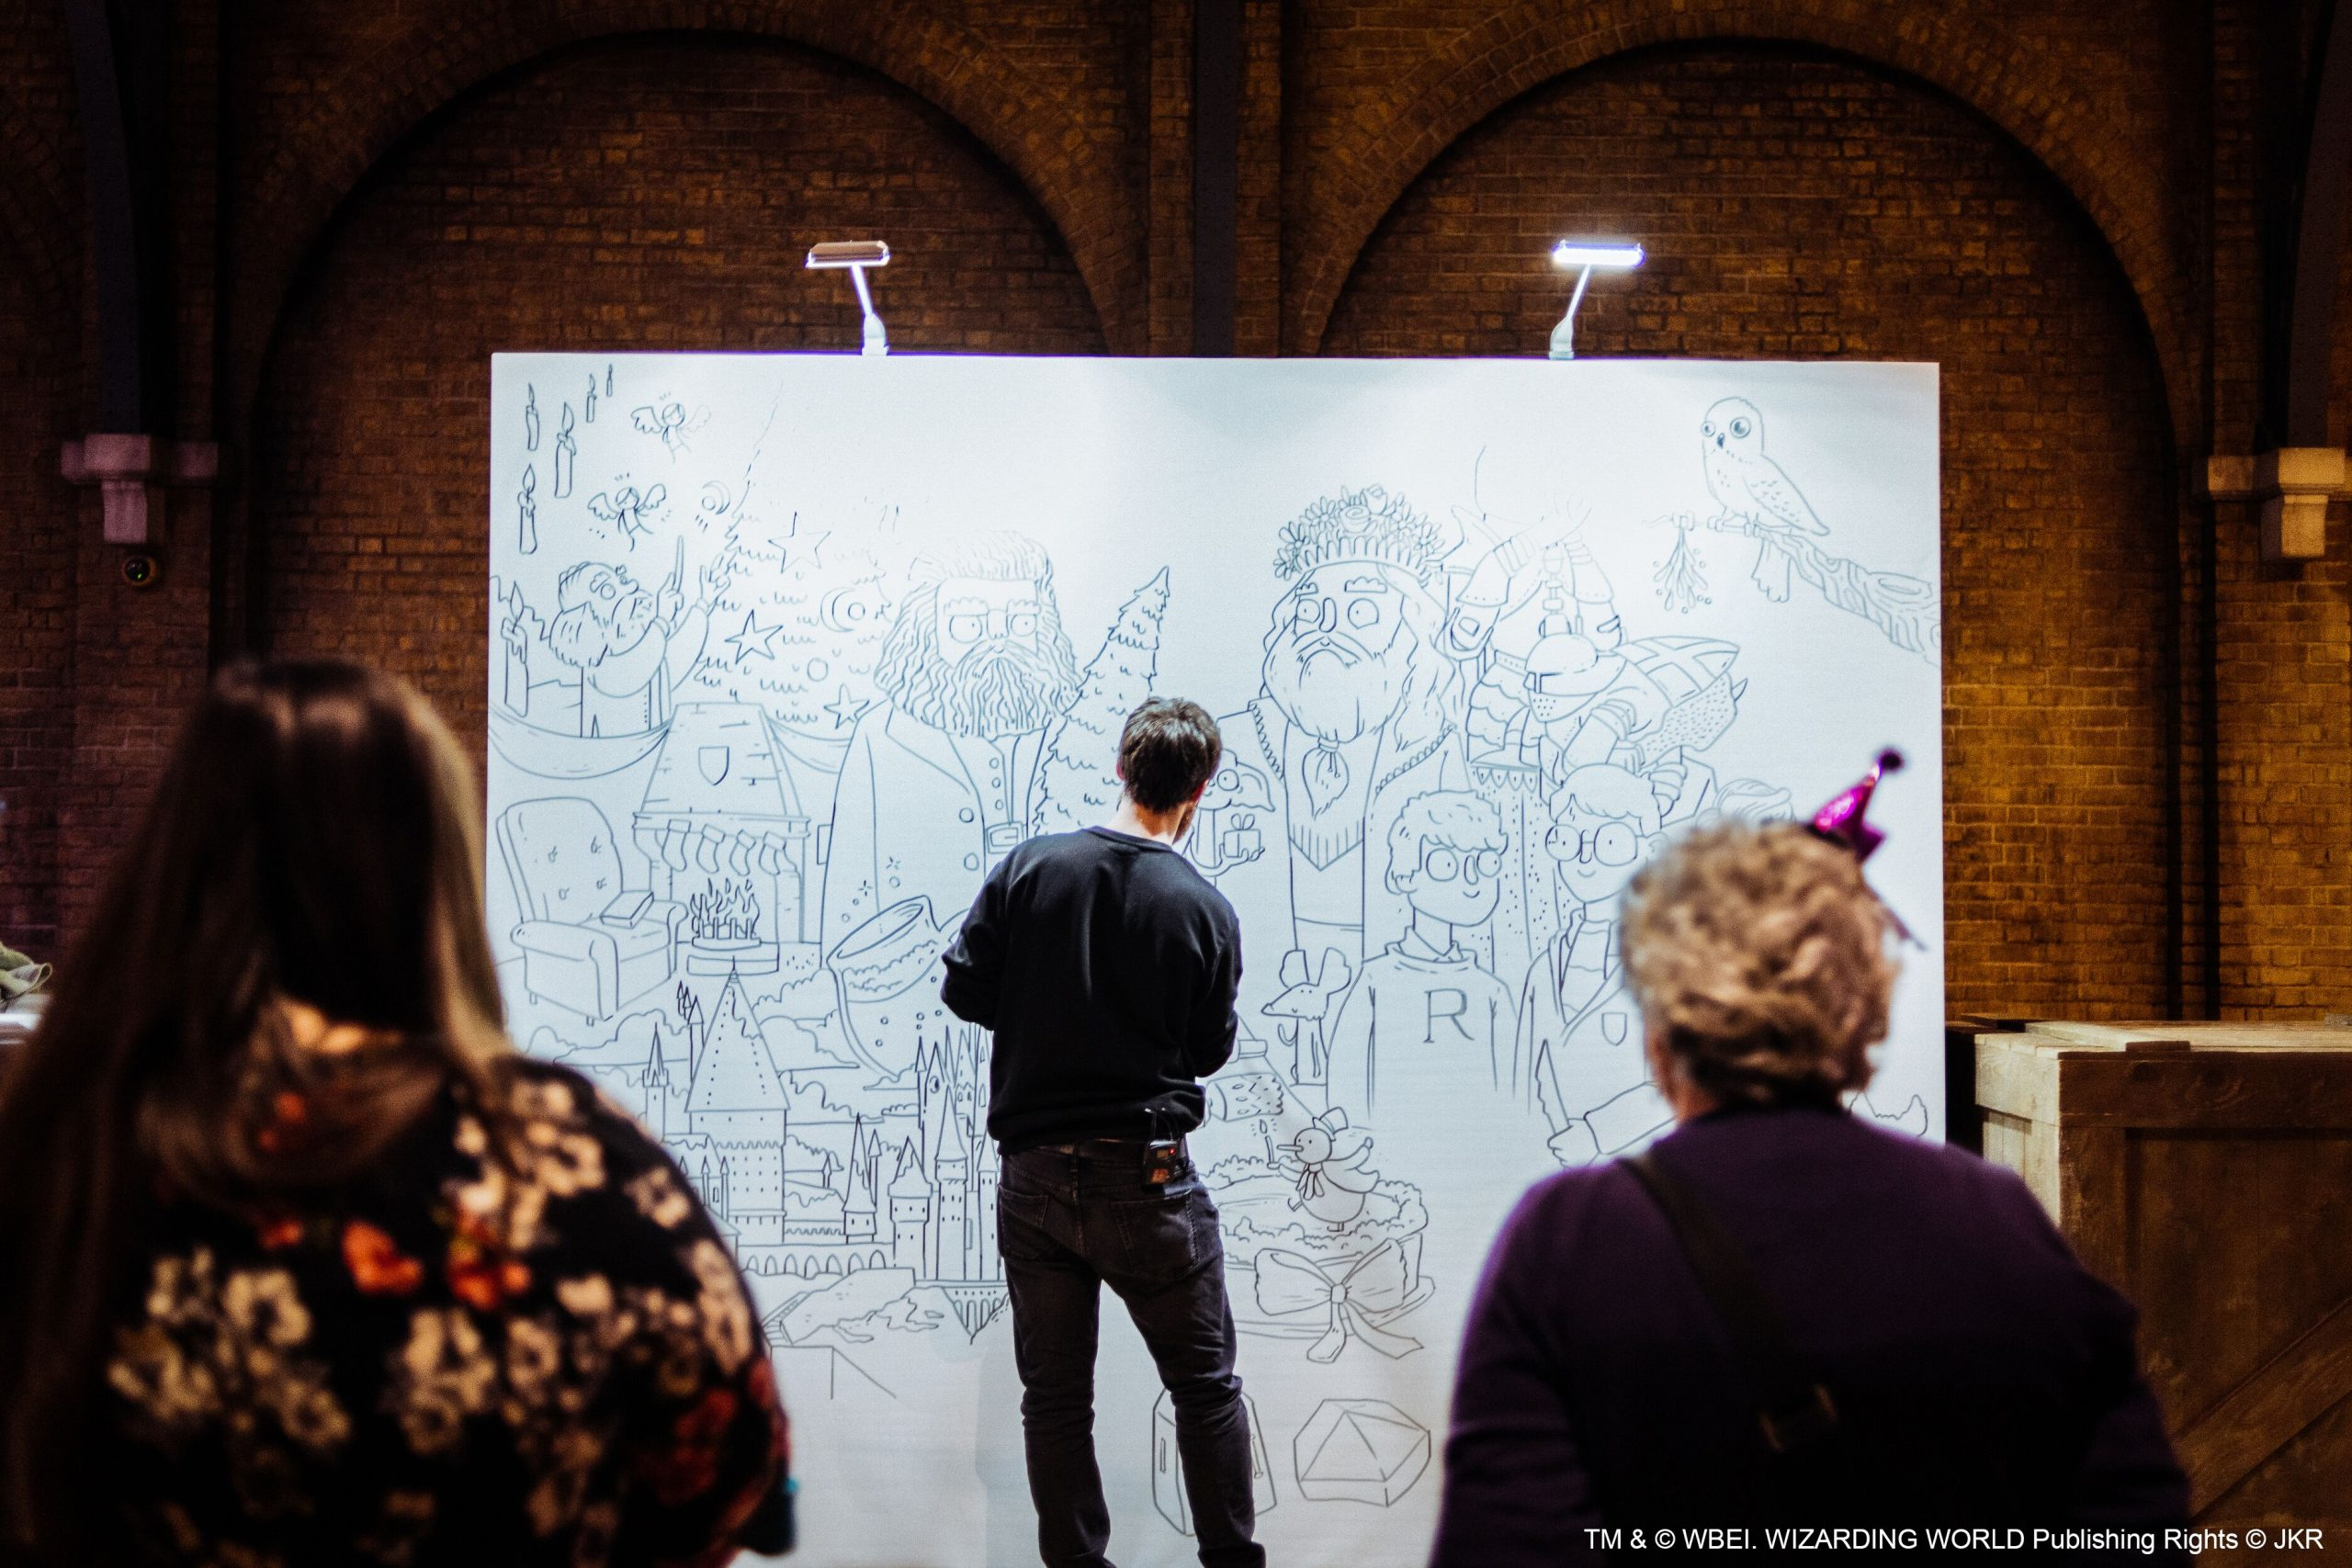 There was also an artist who was creating a mural of Christmas in the wizarding world live at the event.